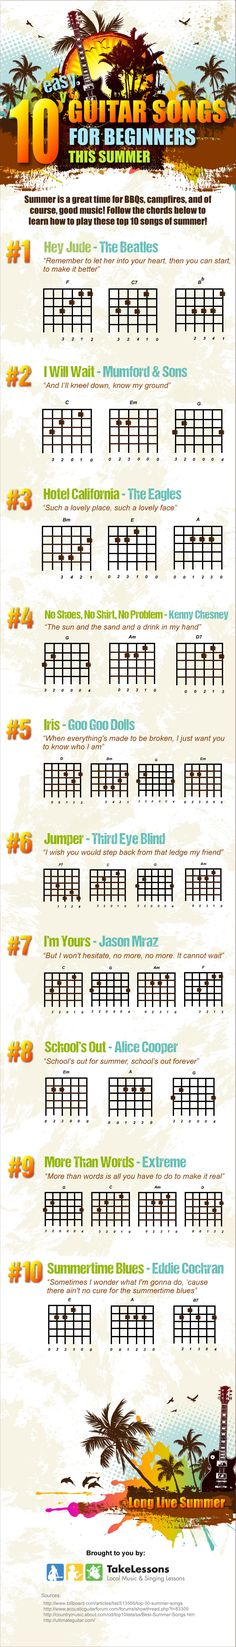 10 Easy Guitar Songs for Beginners This Summer. MUST DO ASAP